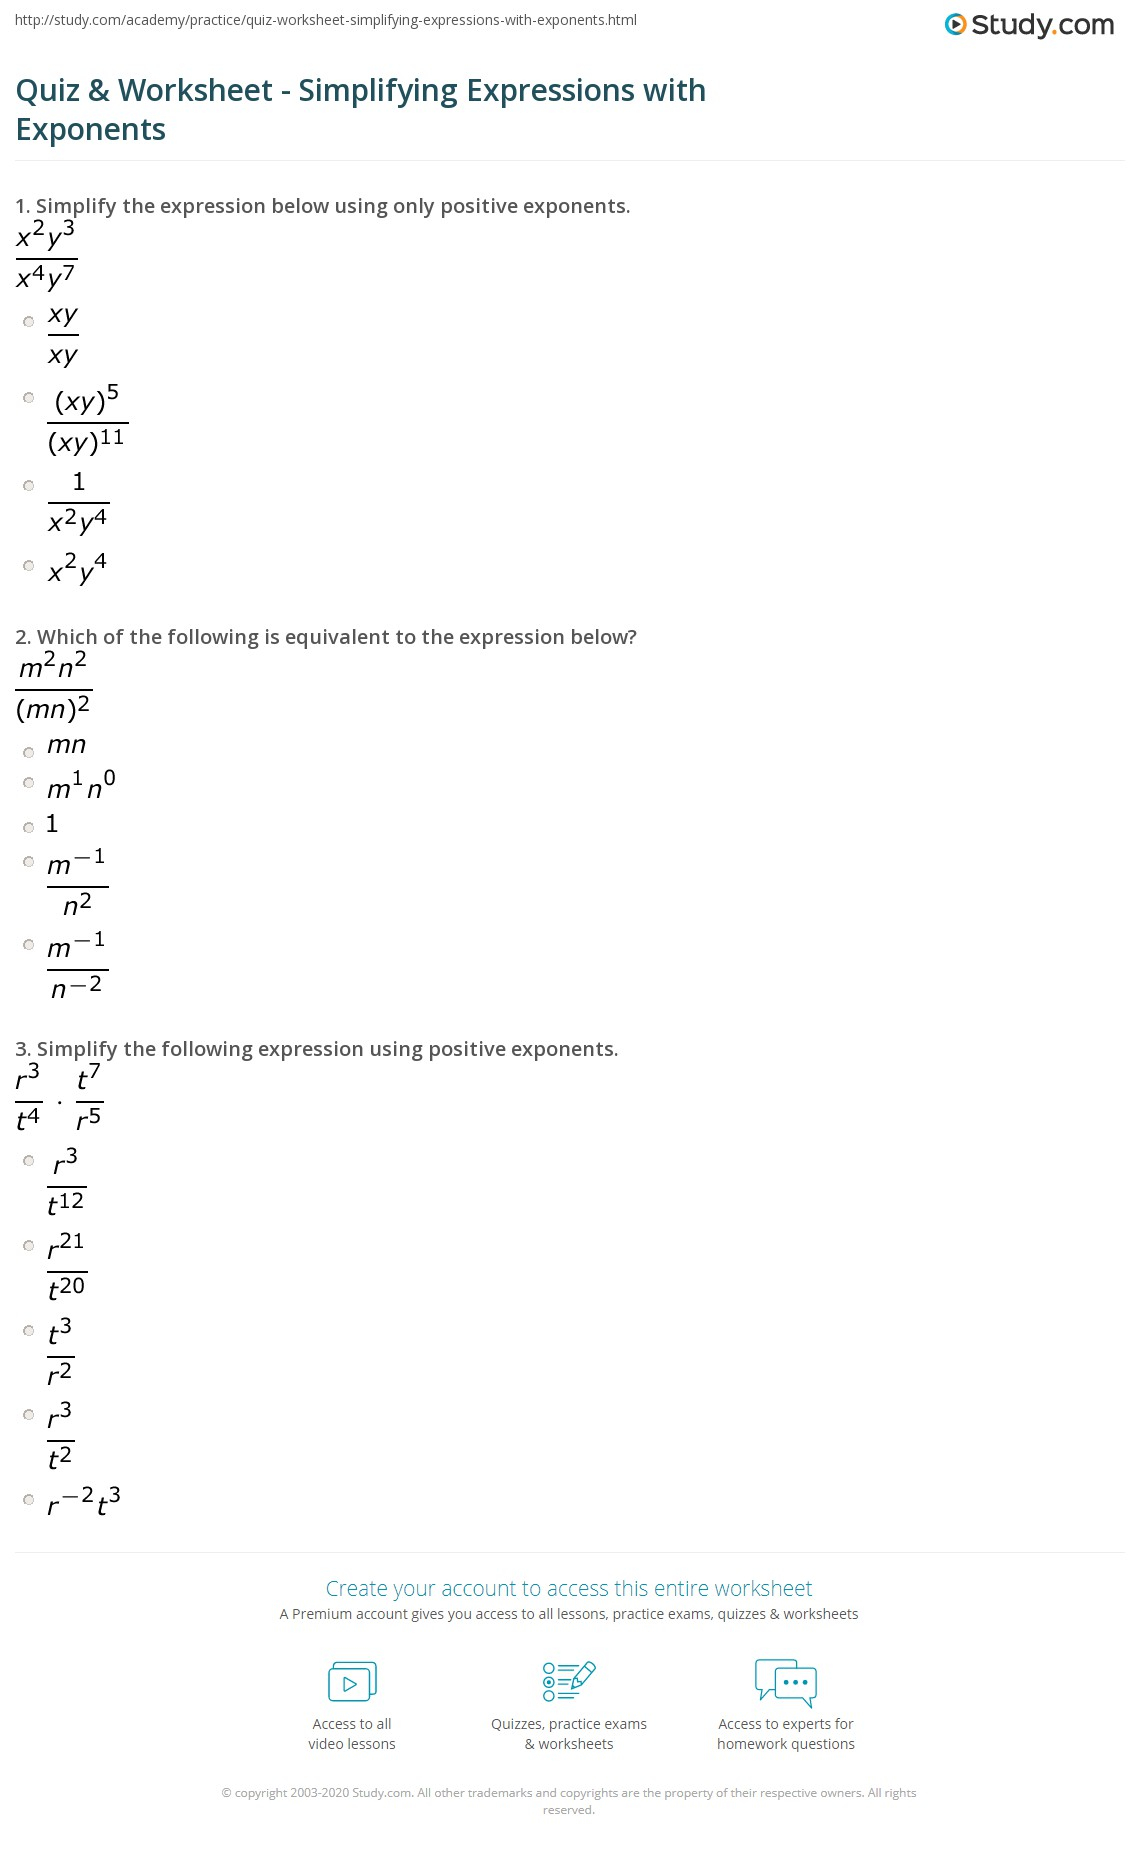 Quiz & Worksheet - Simplifying Expressions With Exponents